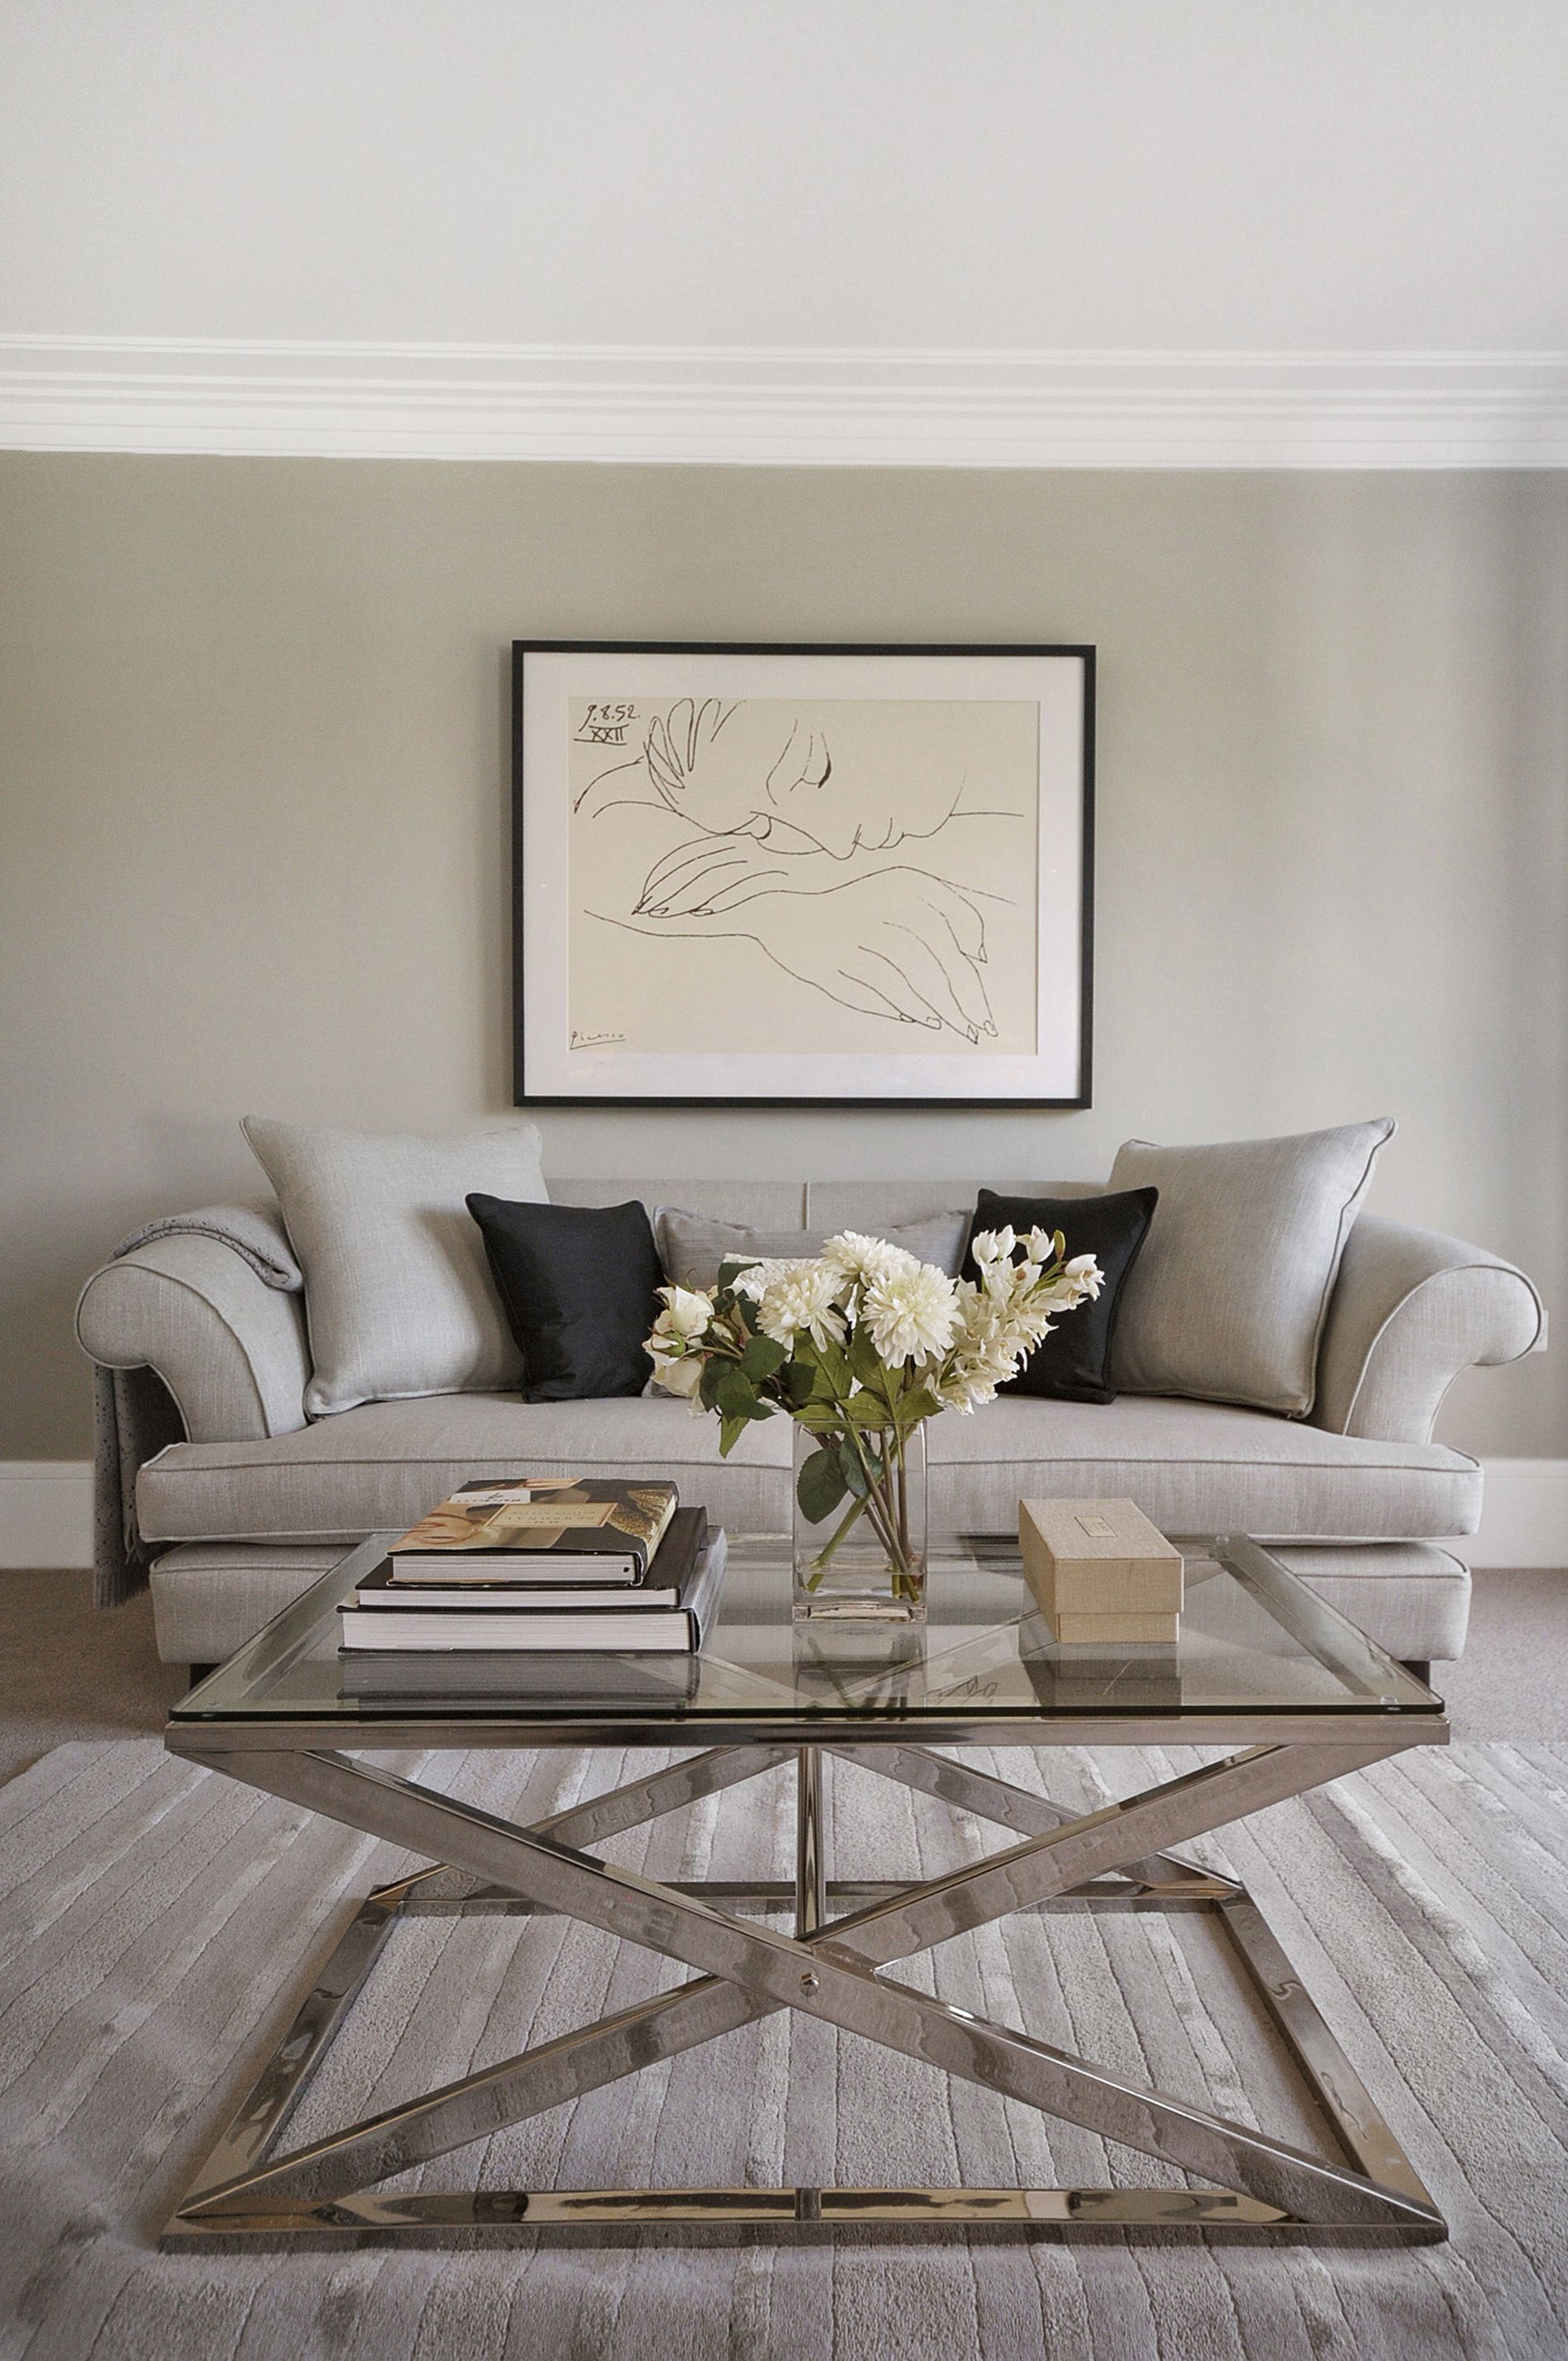 We won best interior design show home london for this property in the uk awards also sophisticated seating area rh pinterest